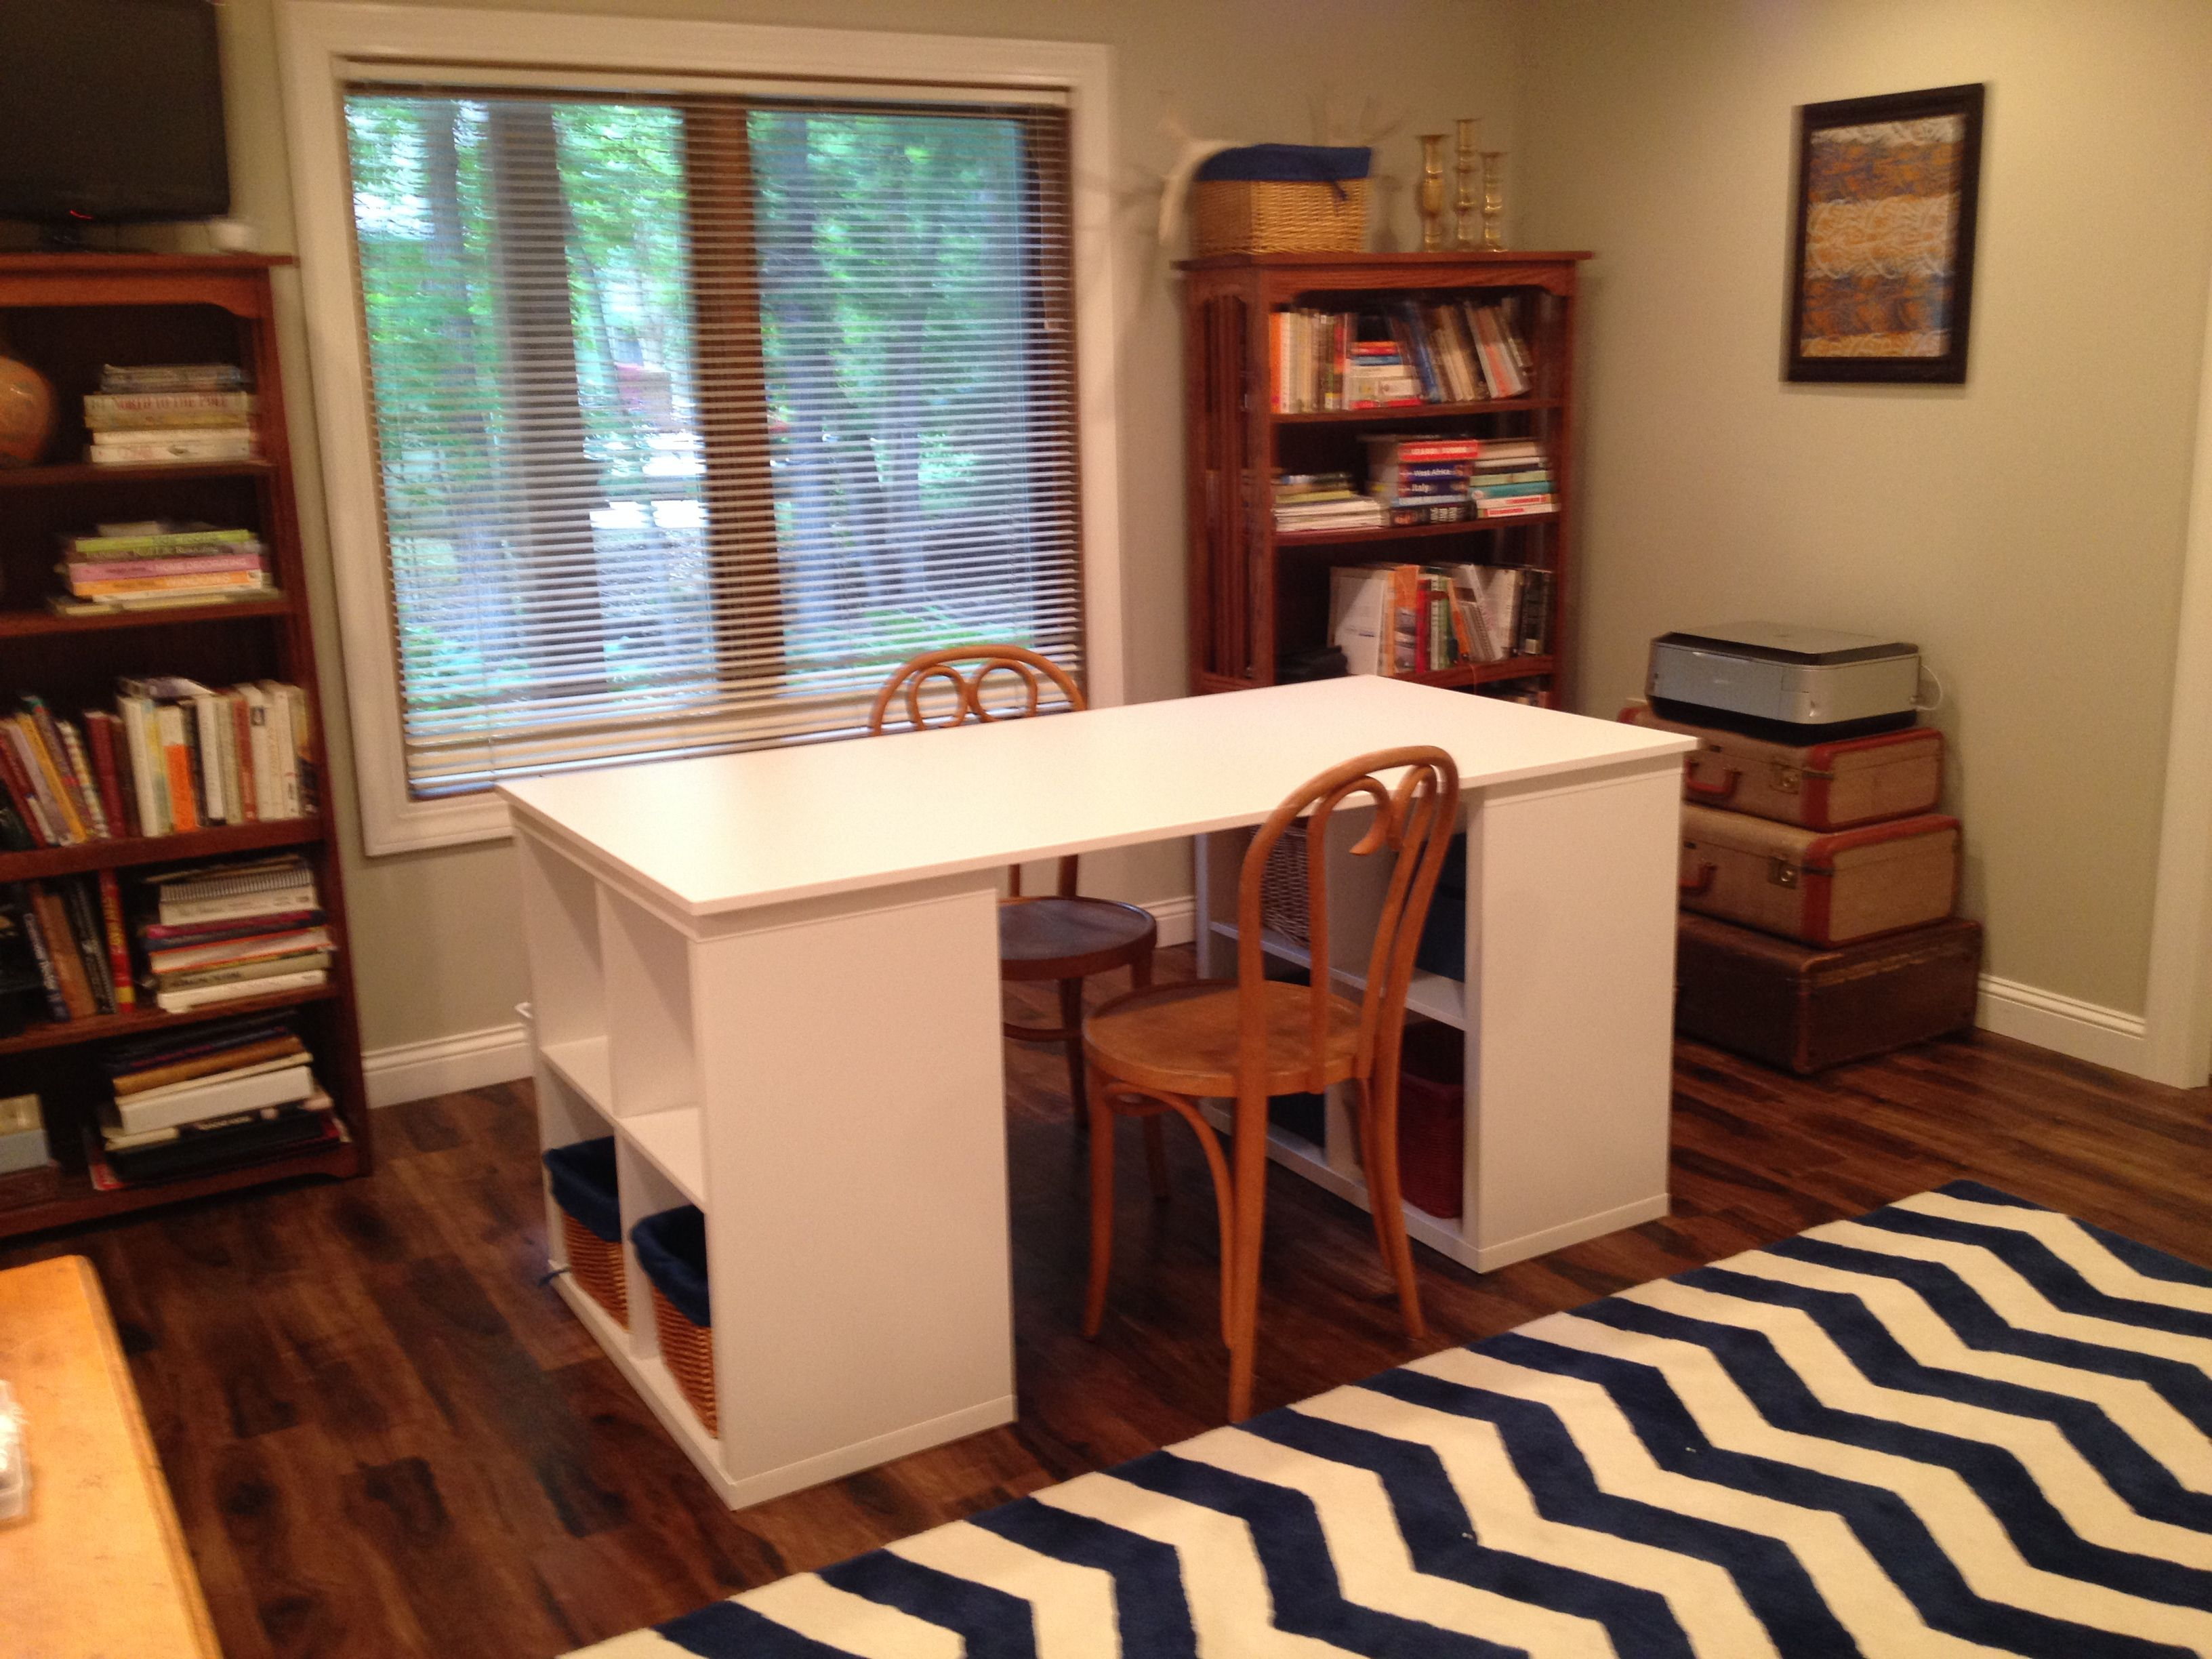 This project table uses two Kallax shelves plus a Galant